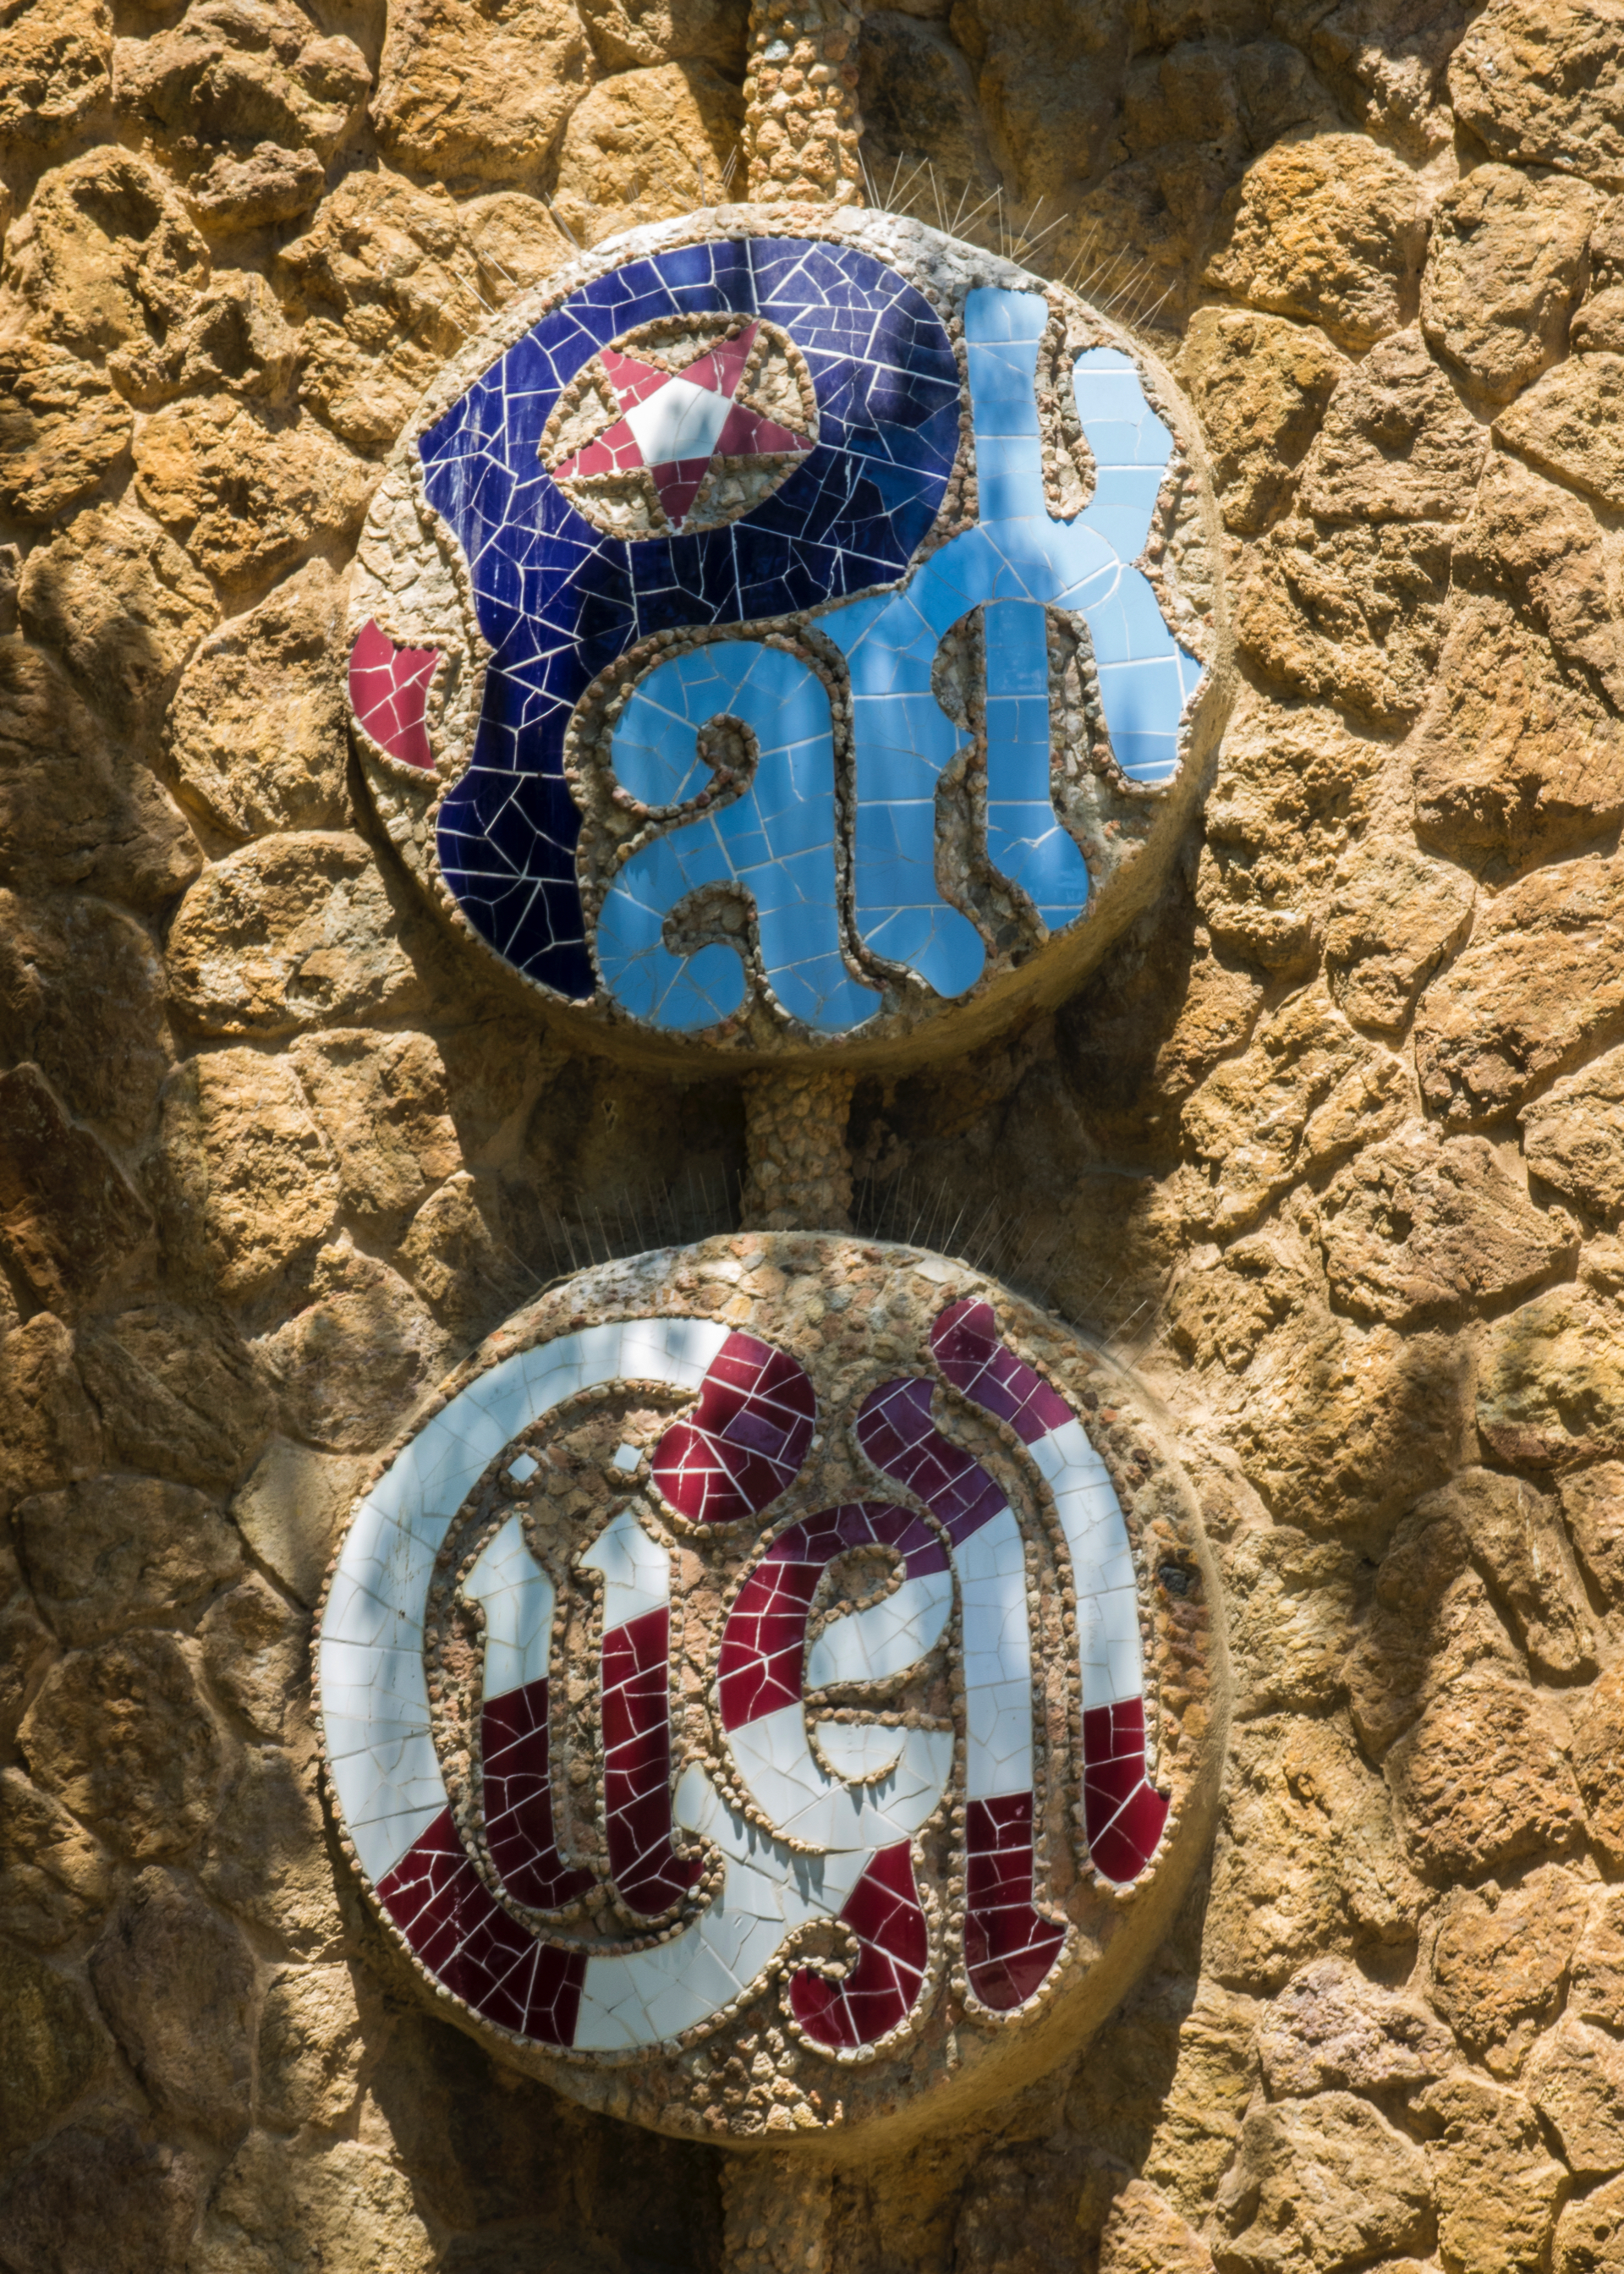 There are many decorative elements around the park. I love Gaudi's use of mosaic in many of them.